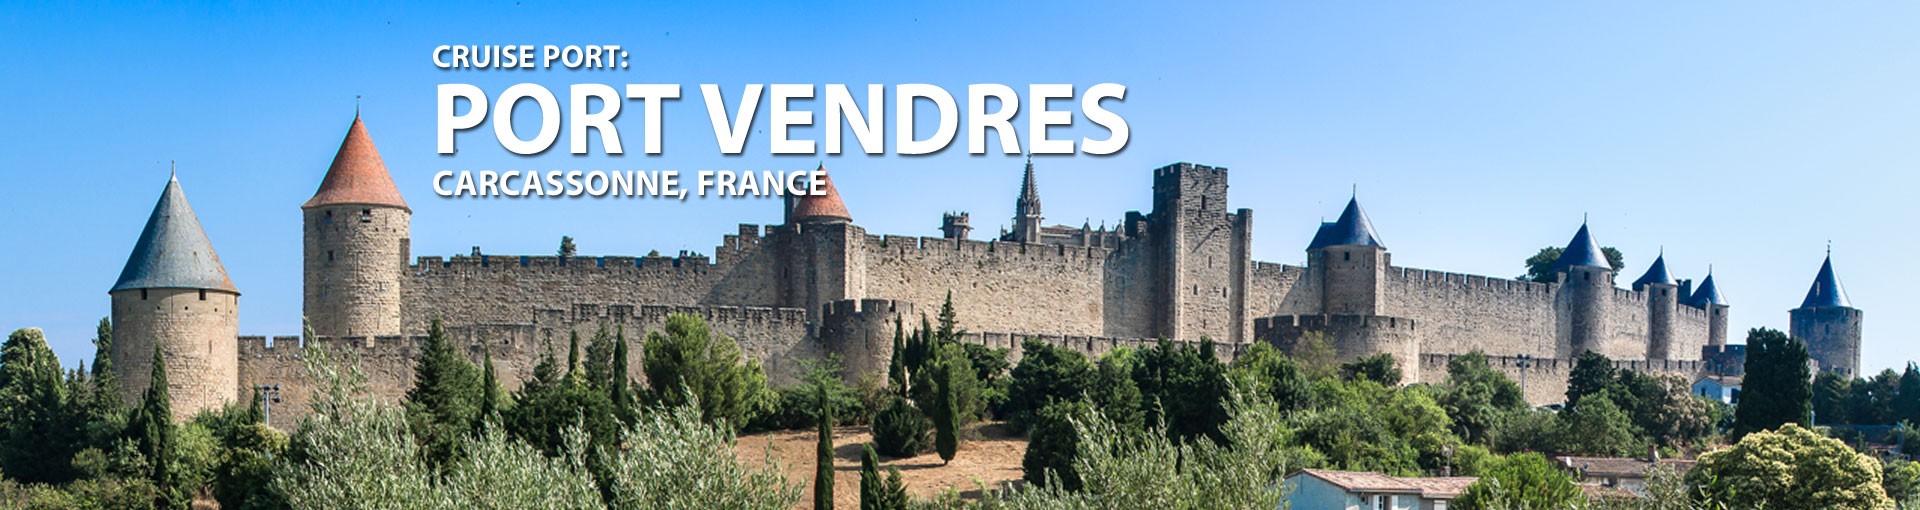 Cruises to Port Vendres (Carcassonne), France